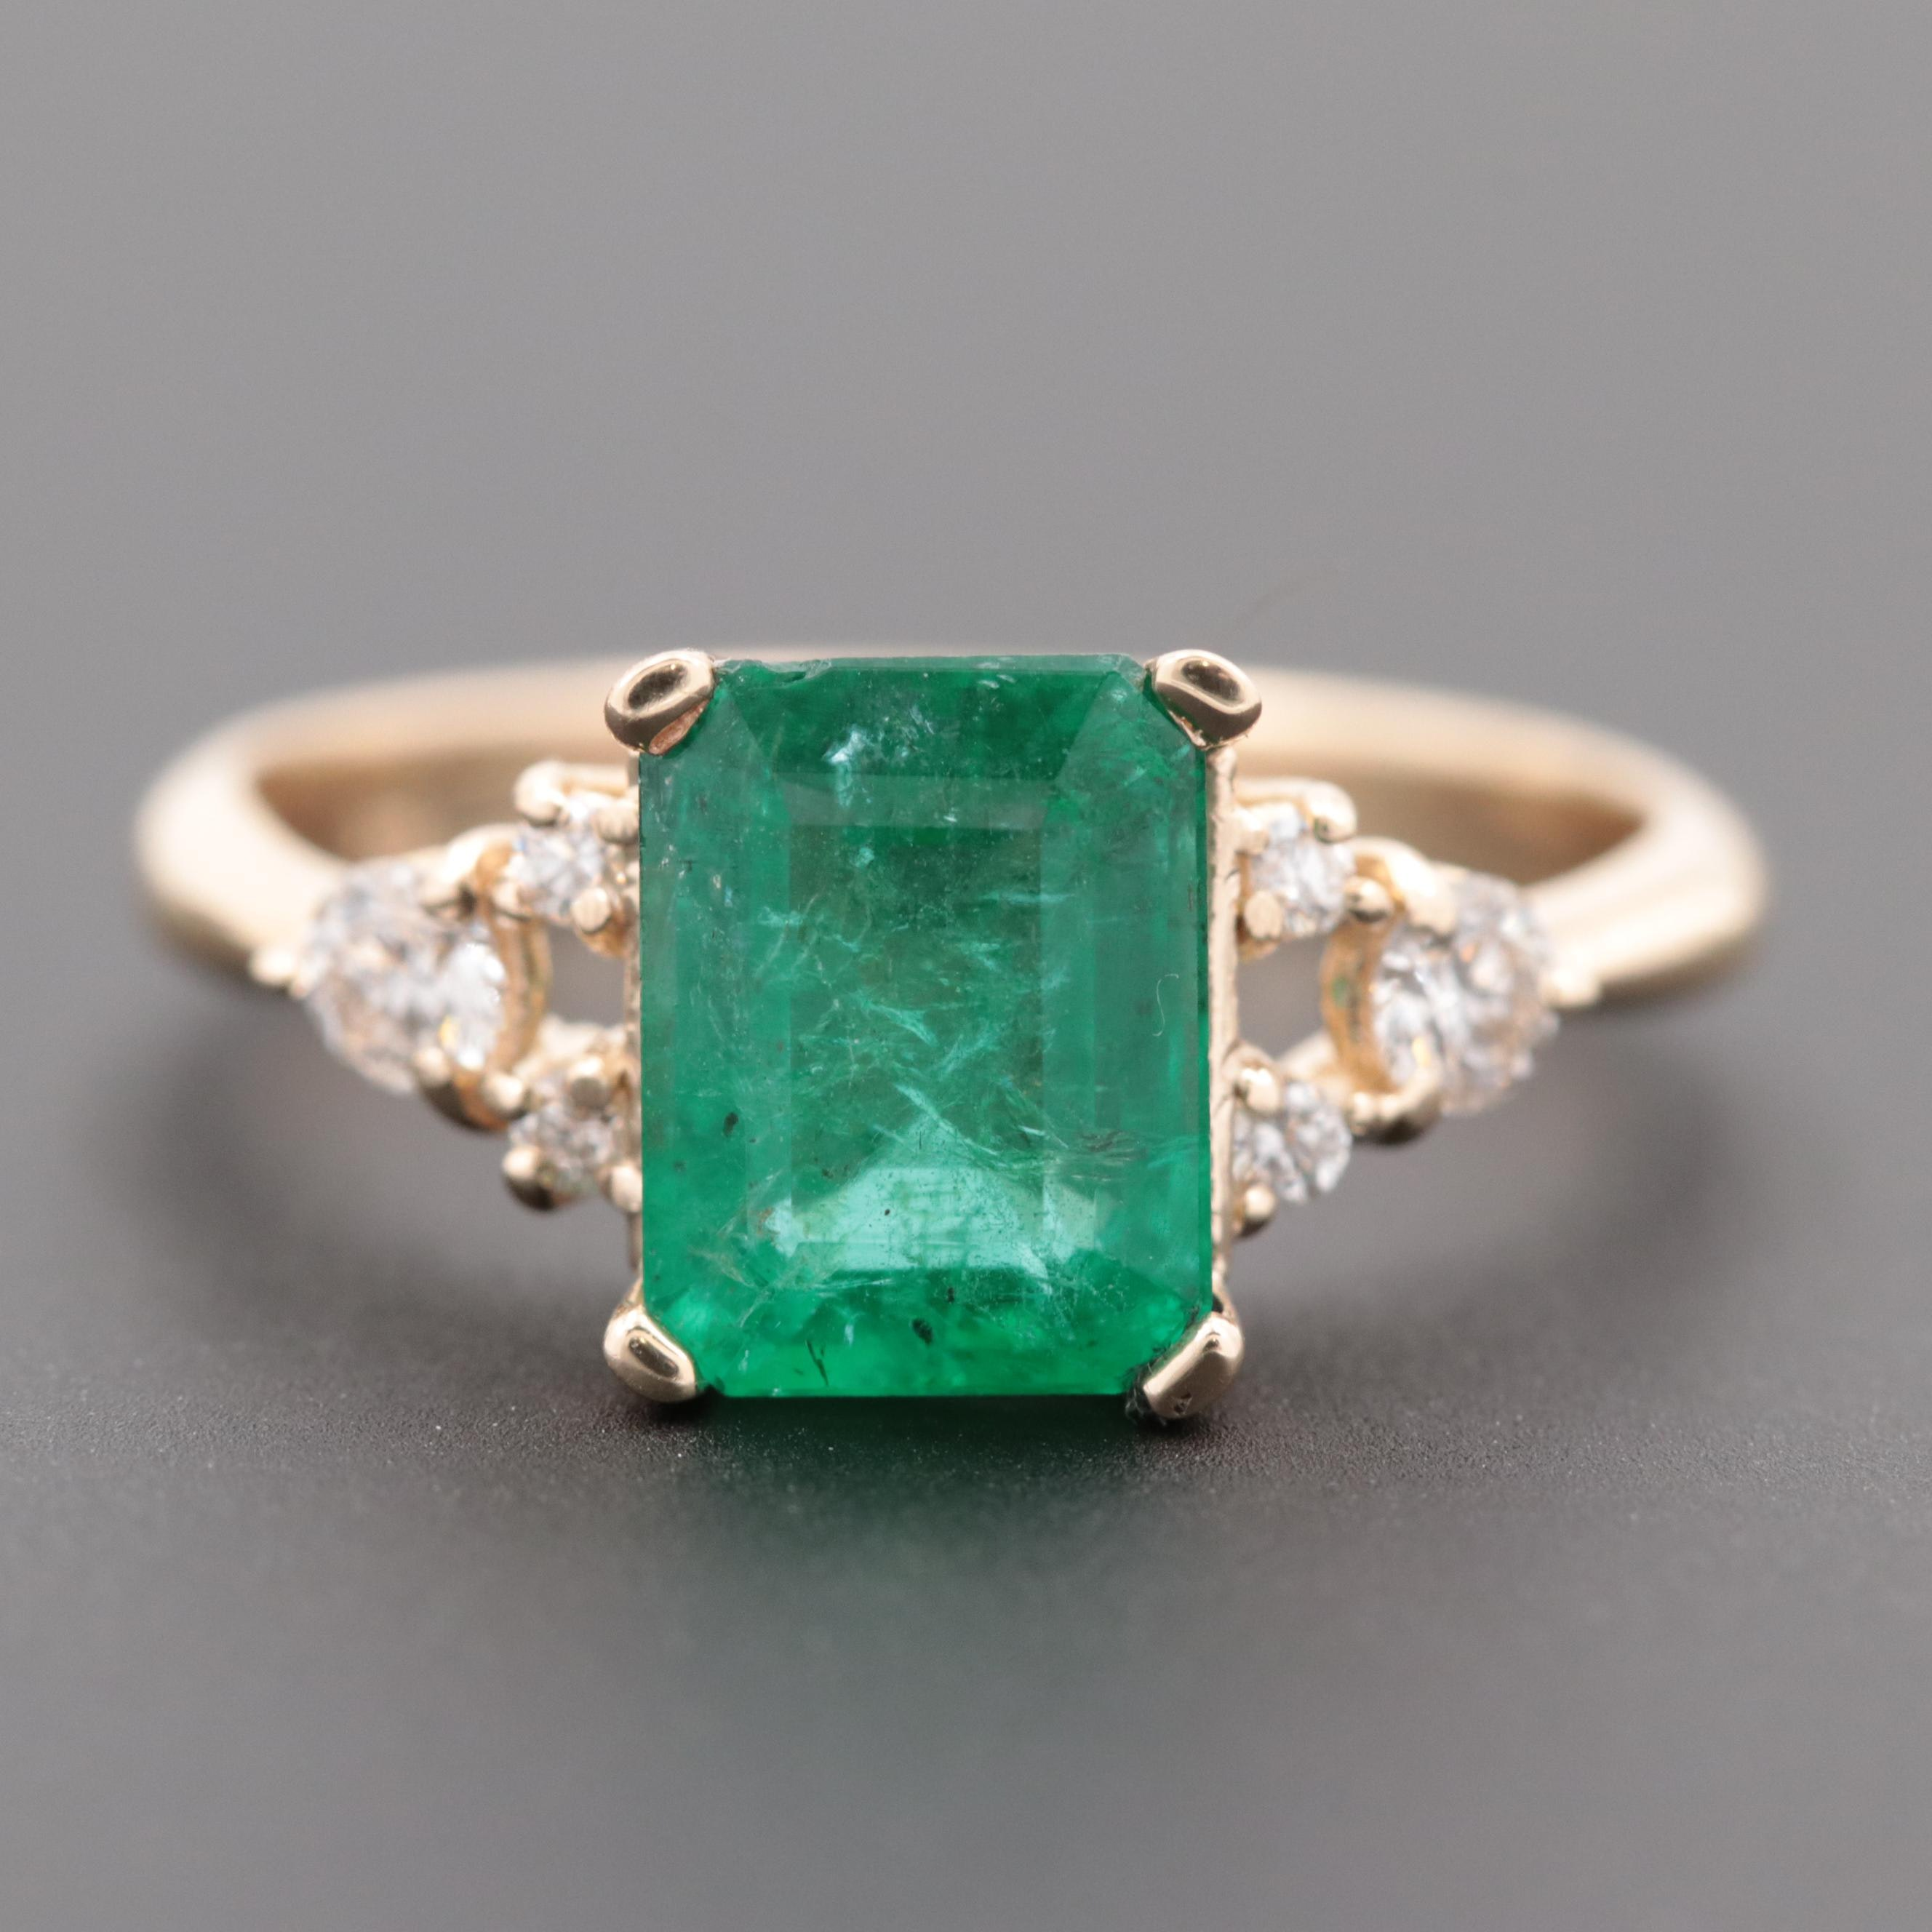 14K Yellow Gold 1.87 CT Emerald and Diamond Ring